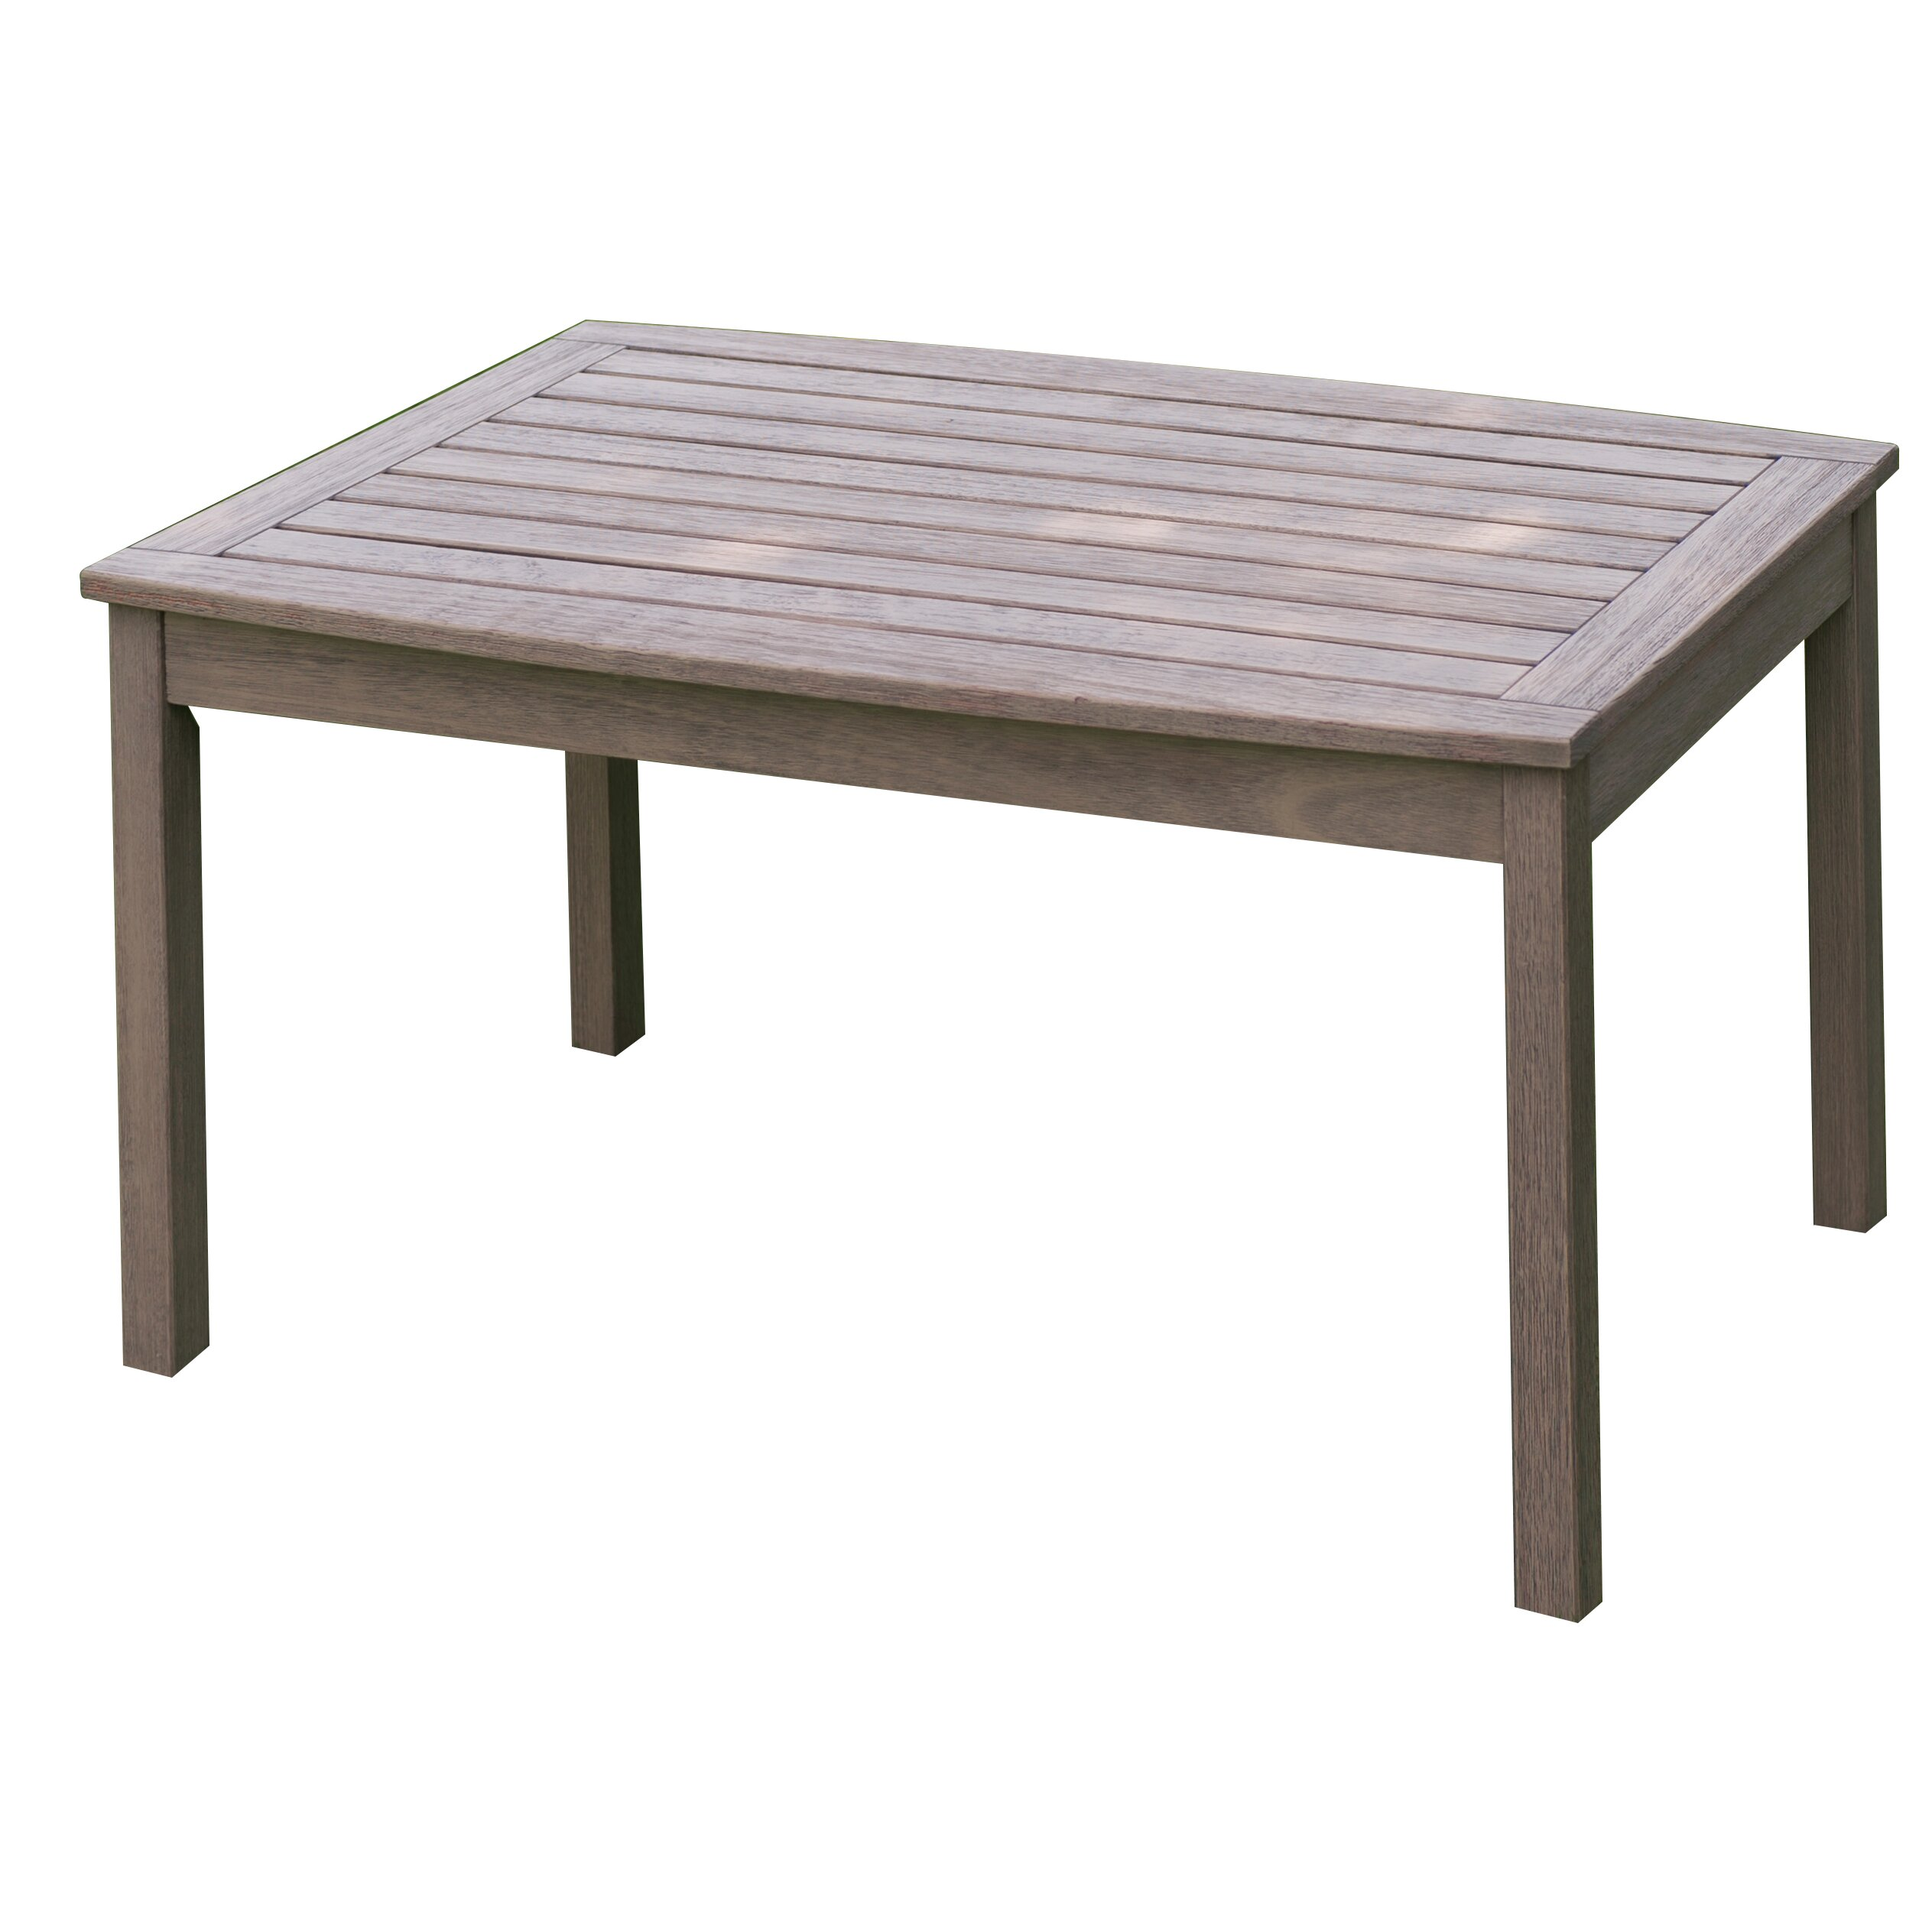 Vintage Casual Coffee Tables: Cambridge Casual Porto Coffee Table & Reviews